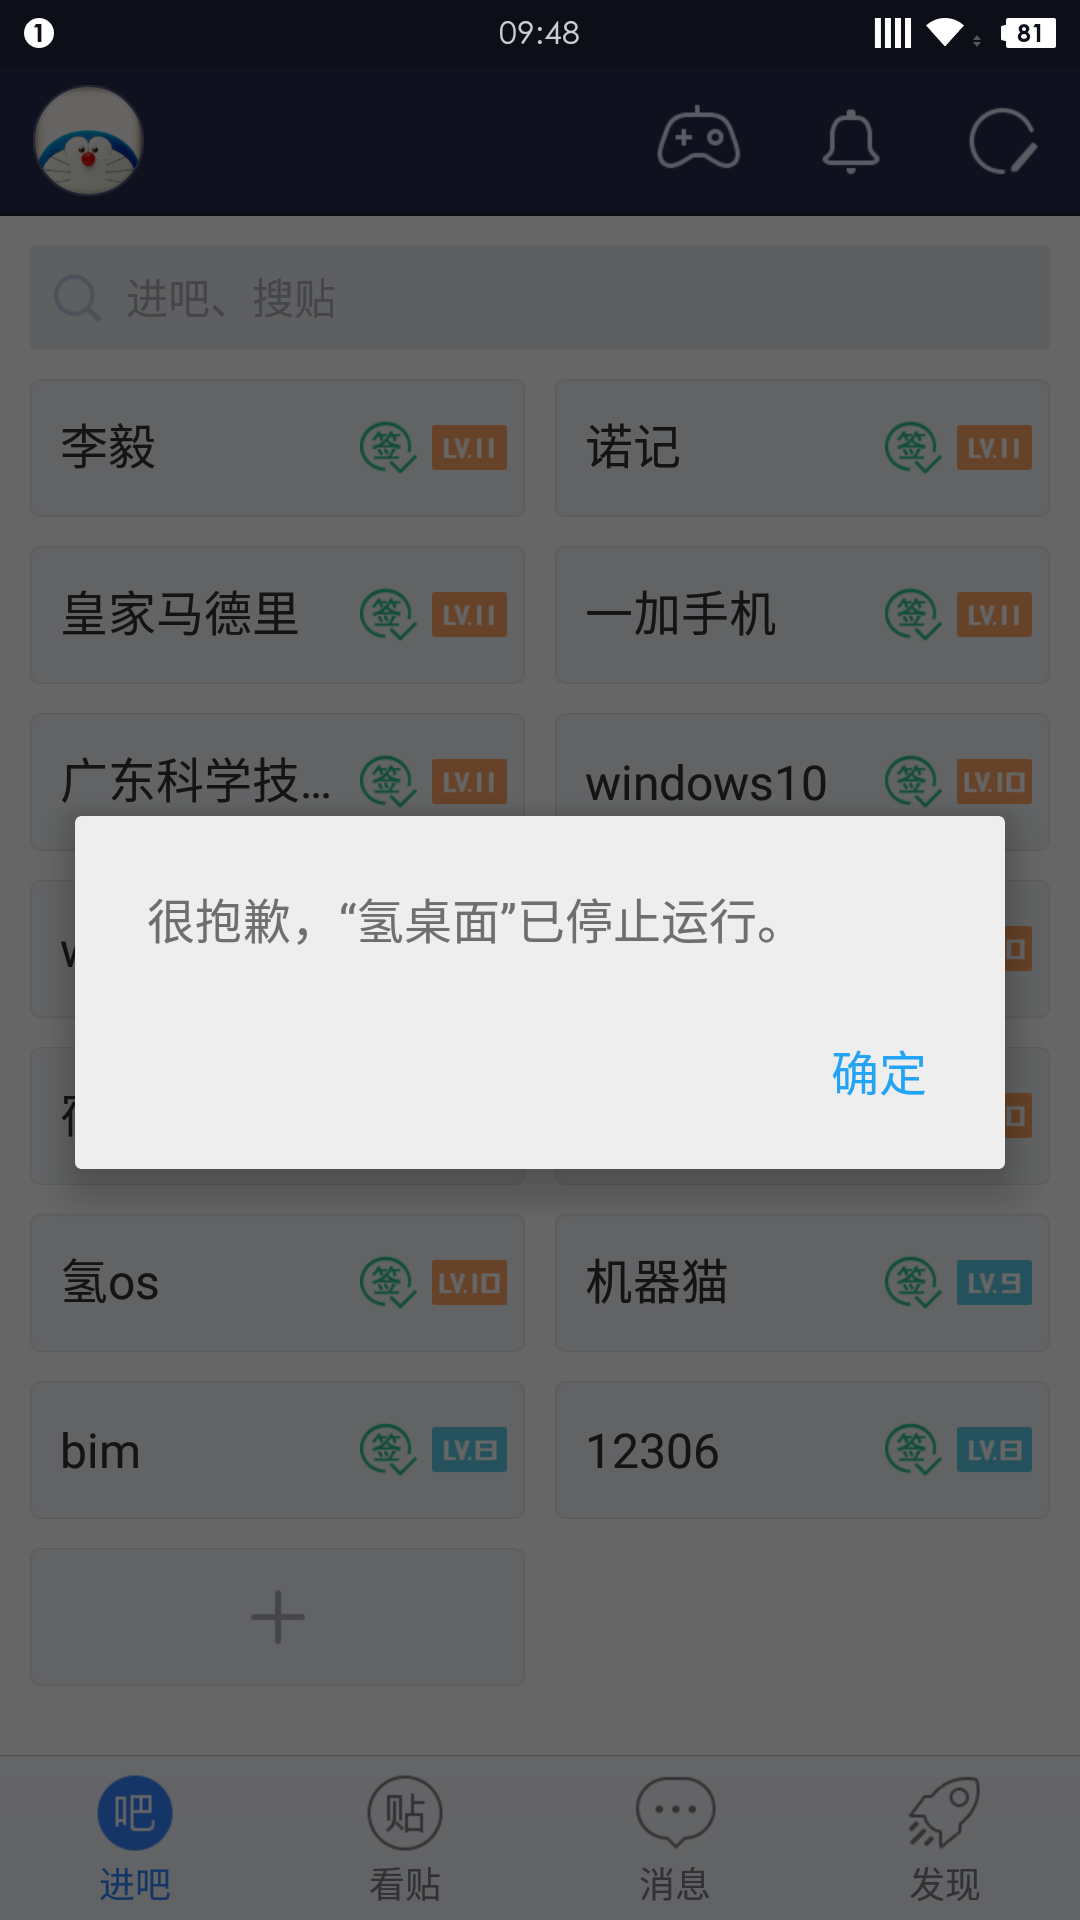 Screenshot_2015-09-19-09-48-43.png